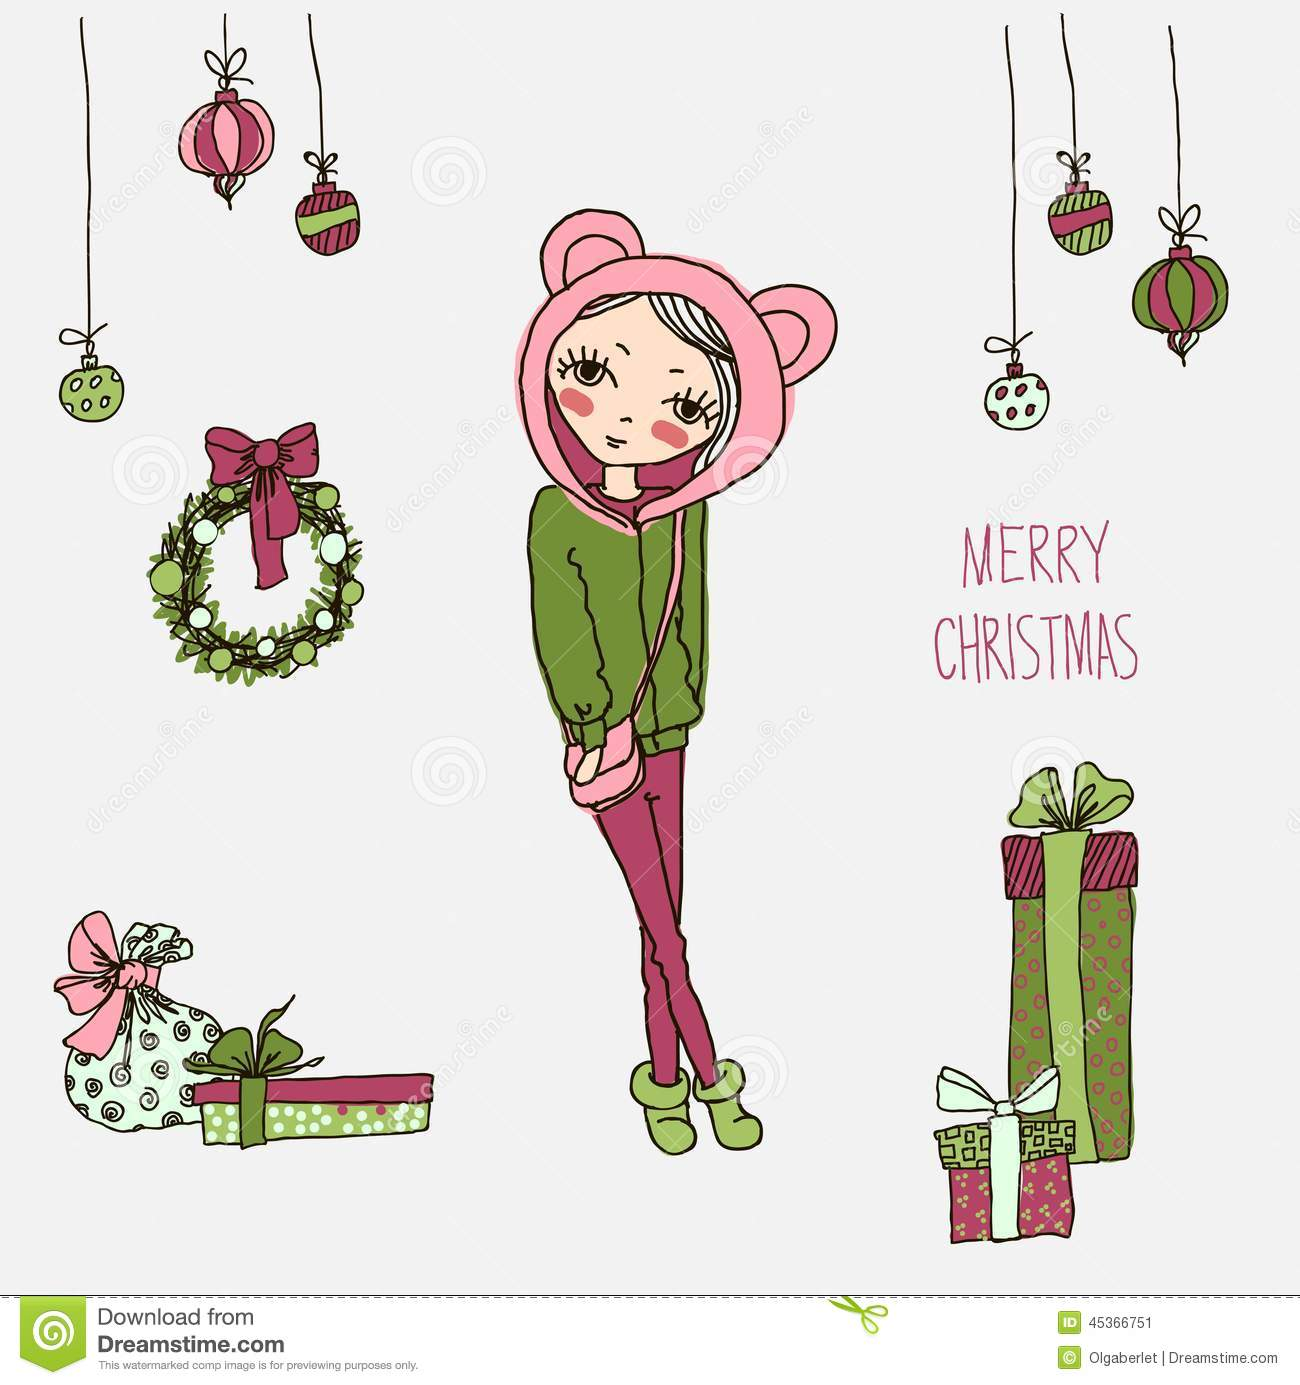 af3f3b665a860 Cute Christmas Card In Vector. Stock Vector - Illustration of ...